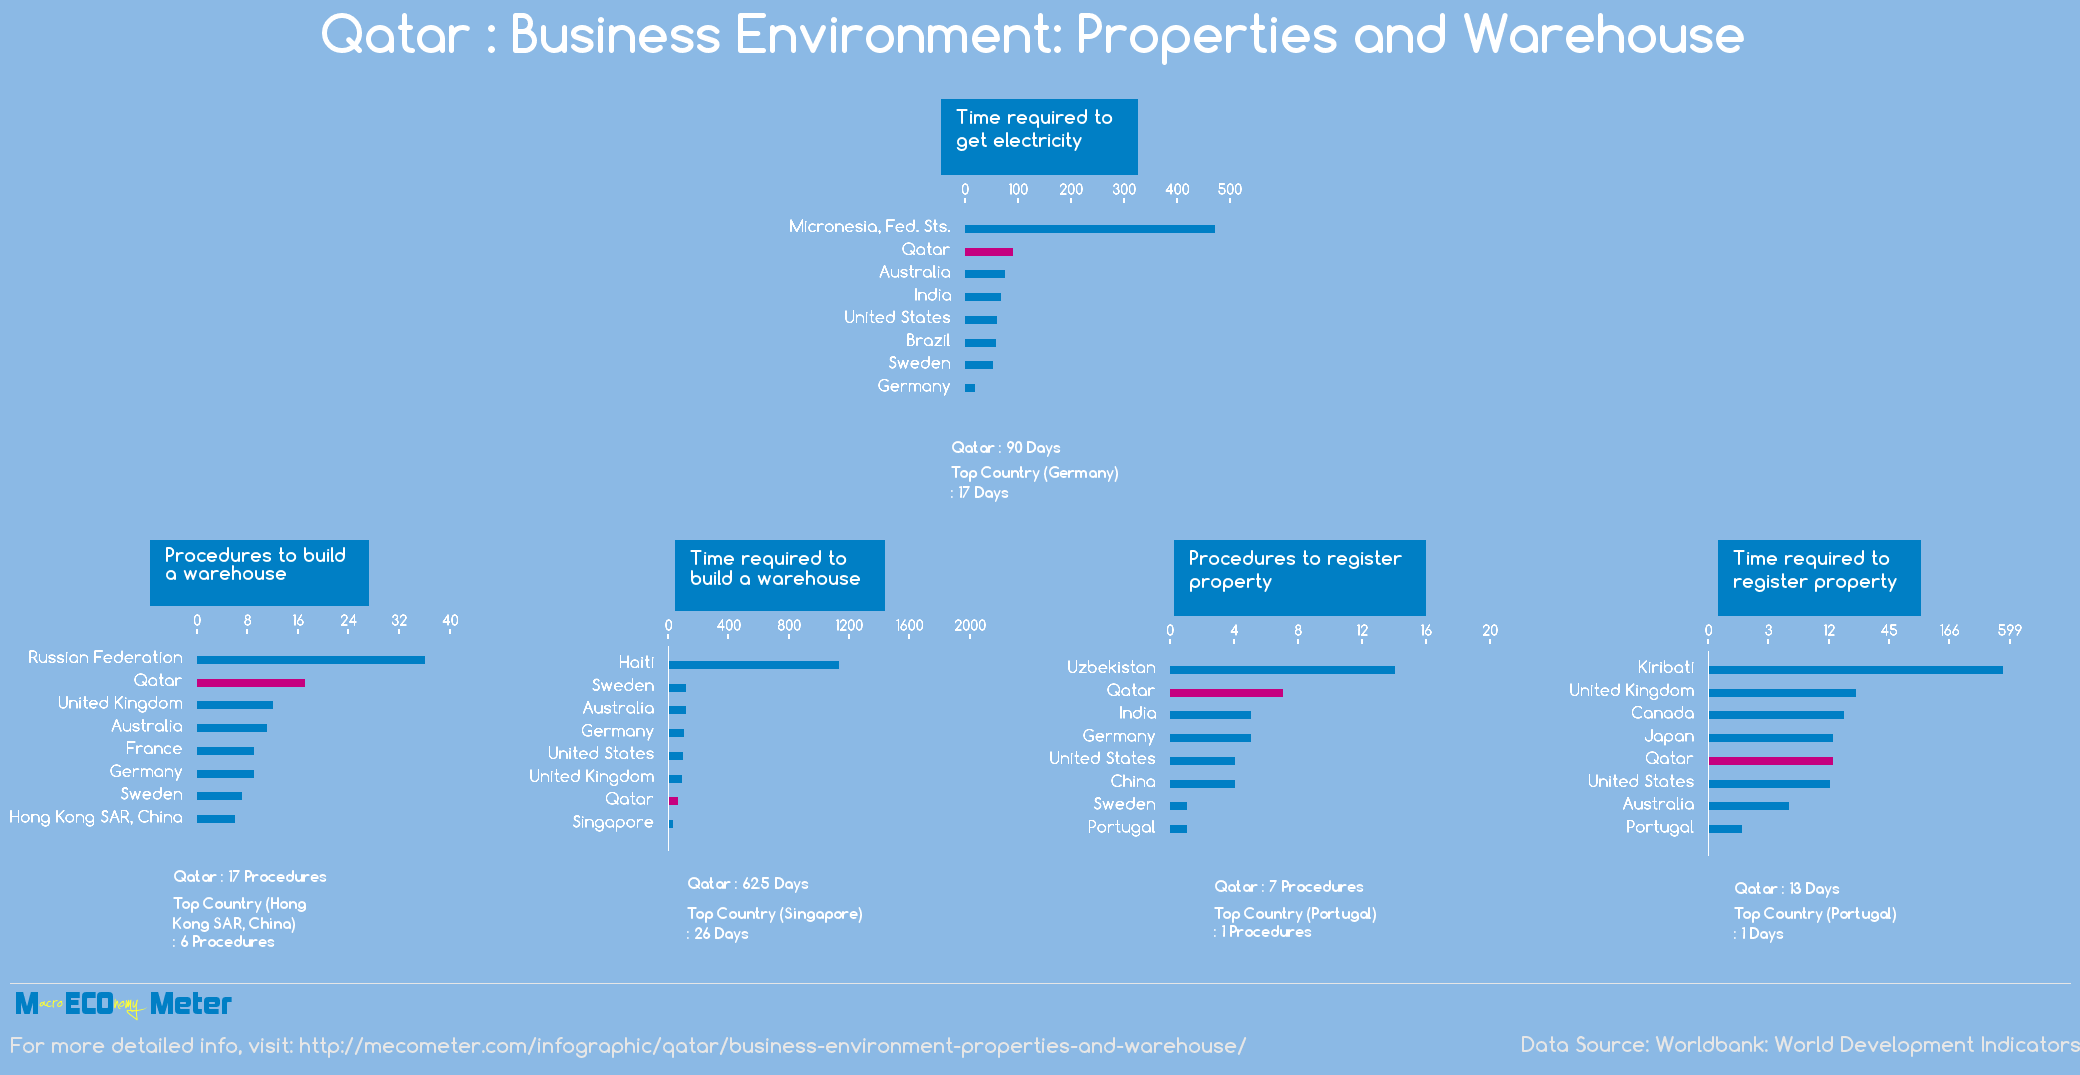 Qatar : Business Environment: Properties and Warehouse